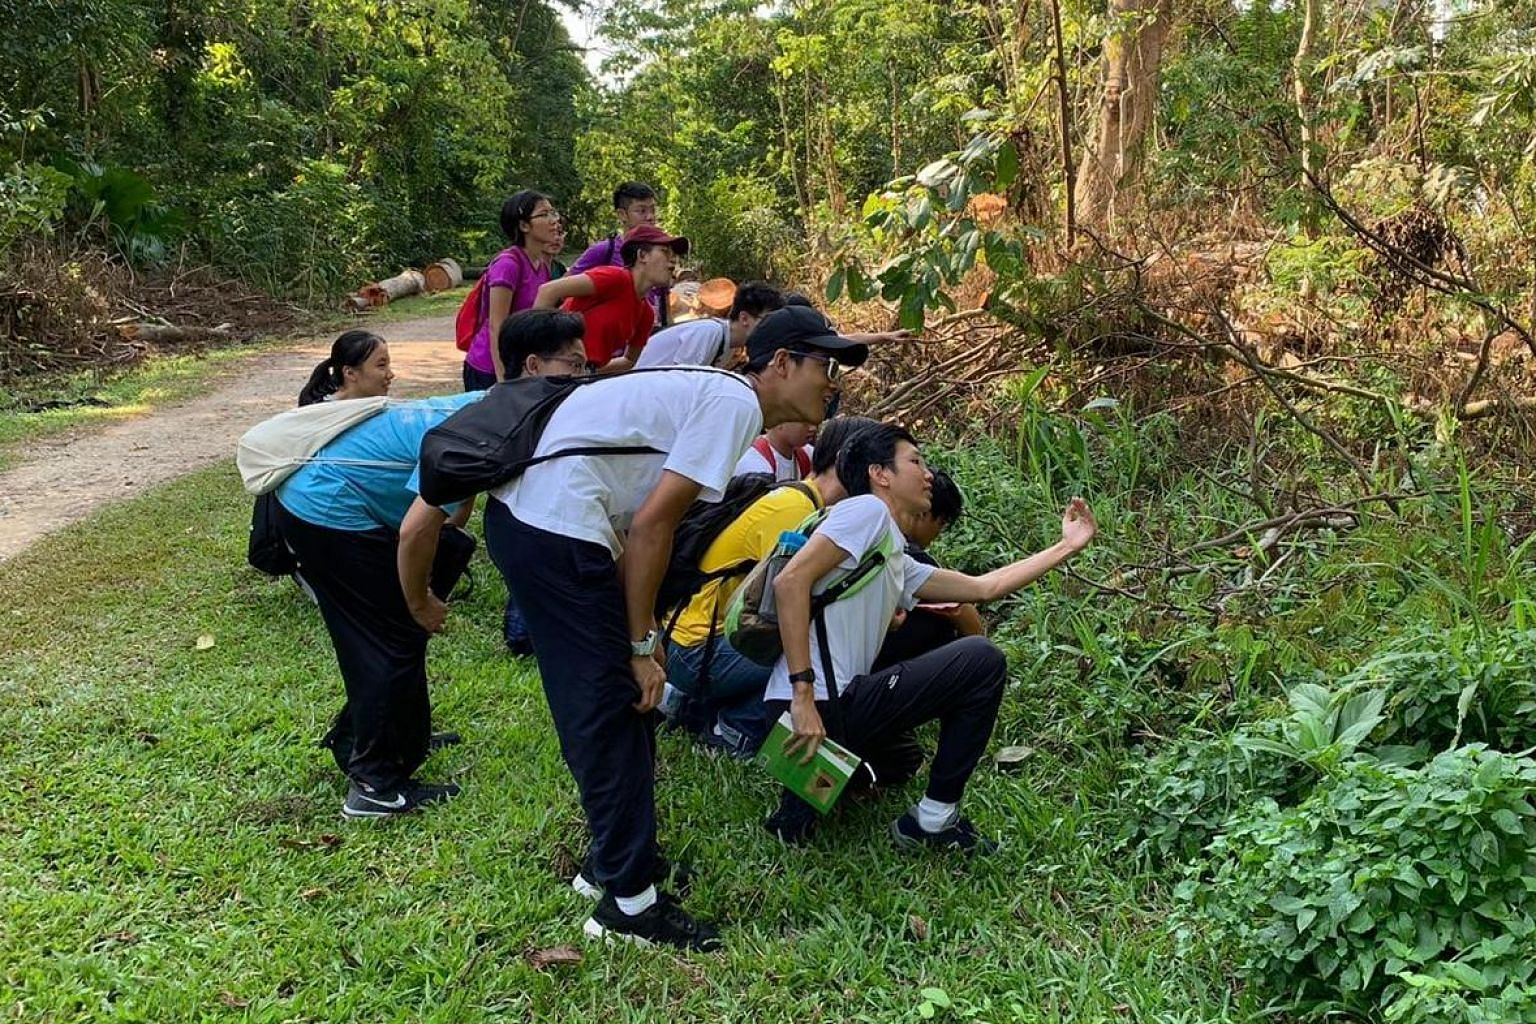 Students leading a nature walk at the Rail Corridor under Project Cynefin, started by Hwa Chong Institution students to raise awareness of wildlife here. PHOTO: HWA CHONG INSTITUTION National Development Minister Desmond Lee (second from left) with y